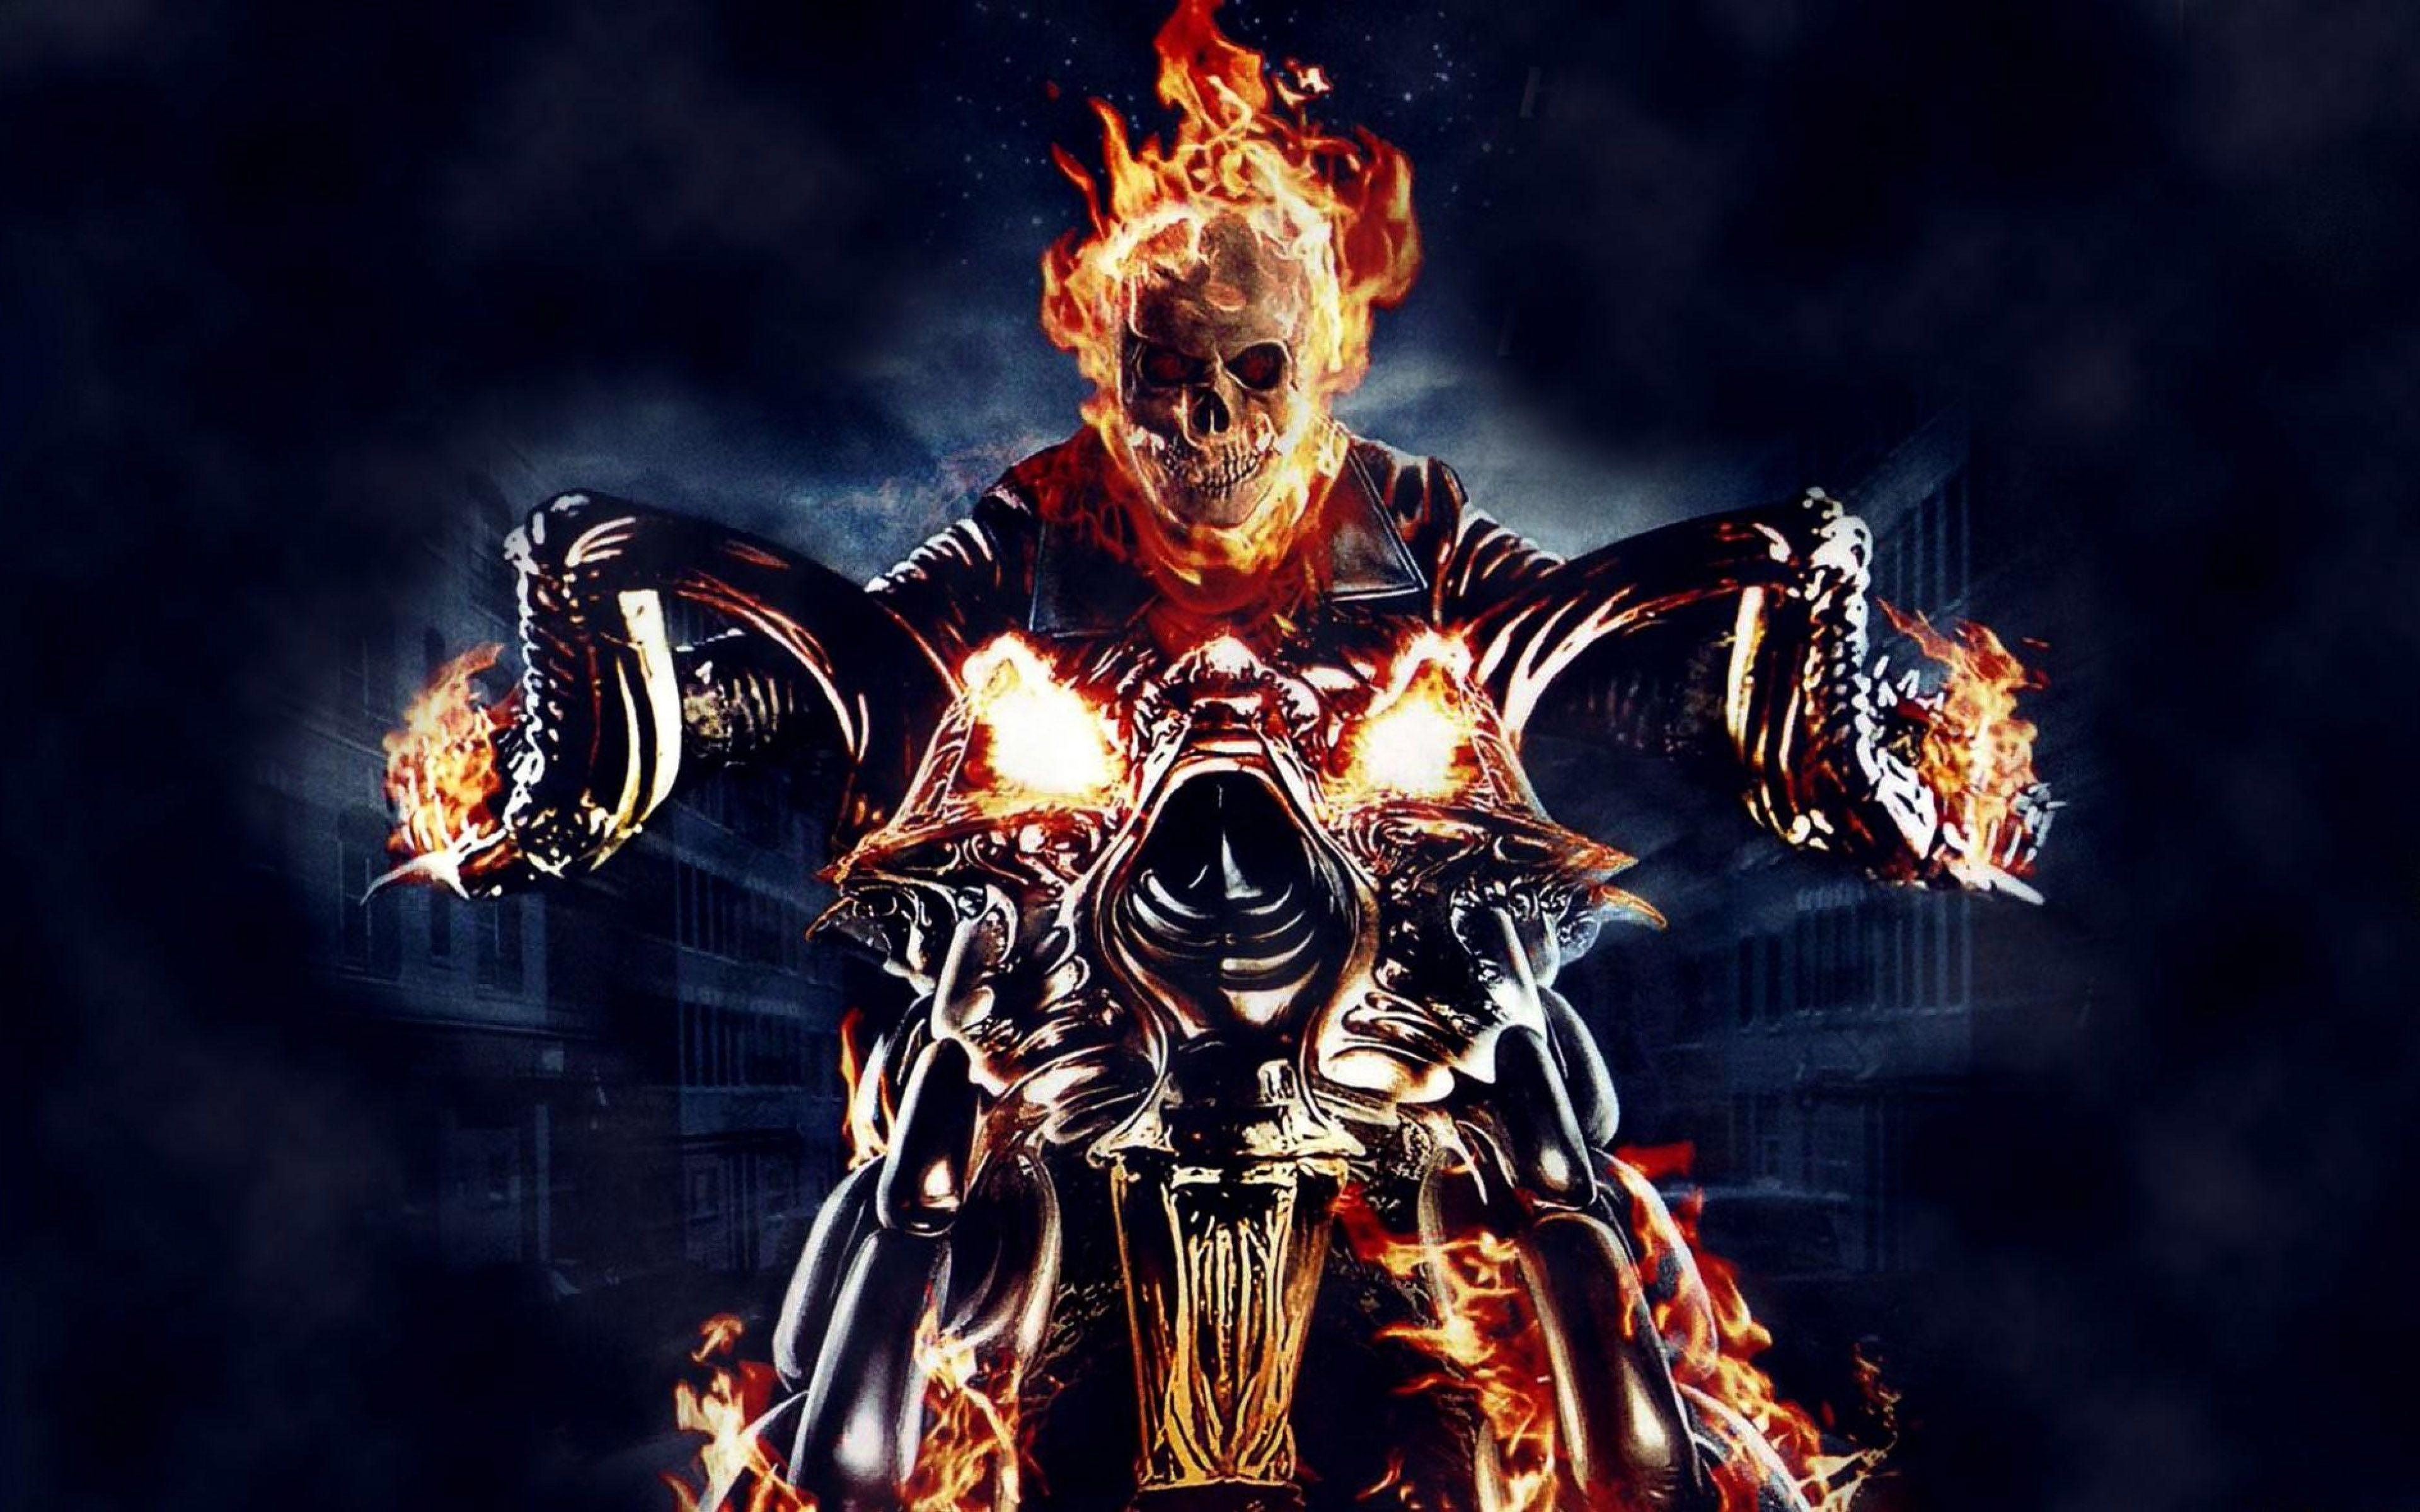 Ghost Rider Motorcycle Fire Skull Skeleton Wallpapers